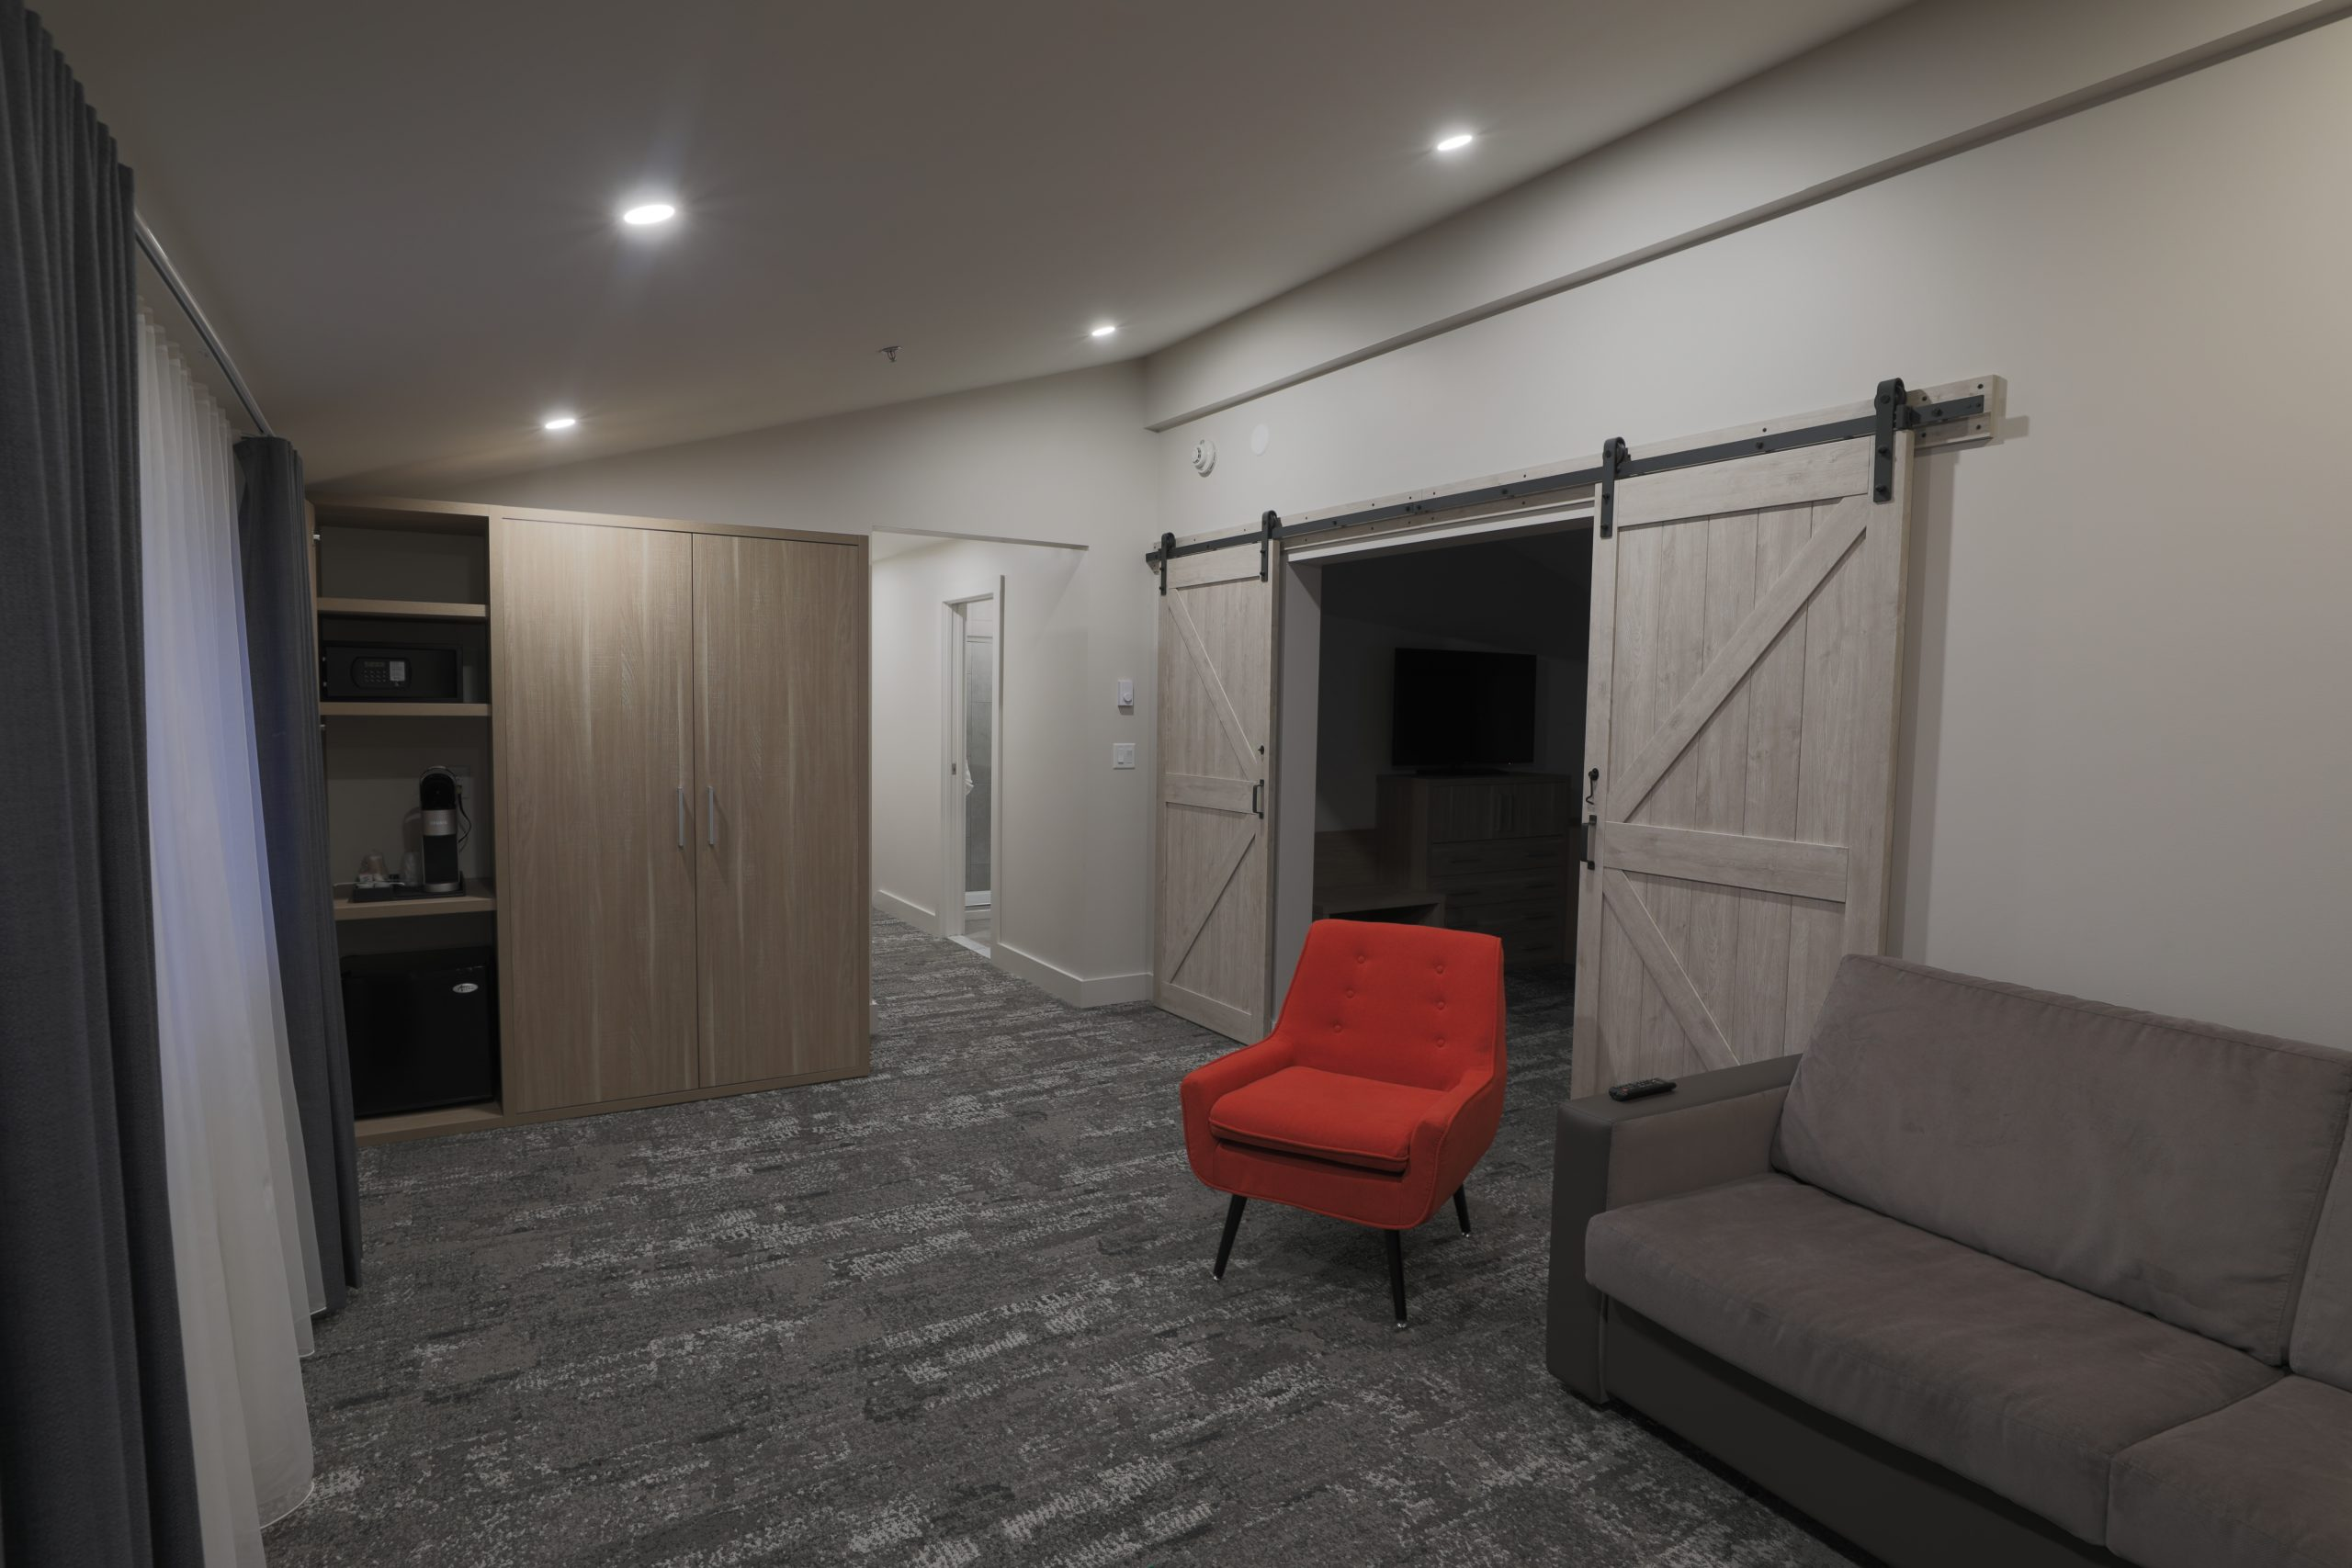 King Suite sitting area with barn doors leading to bedroom and small kitchenette area